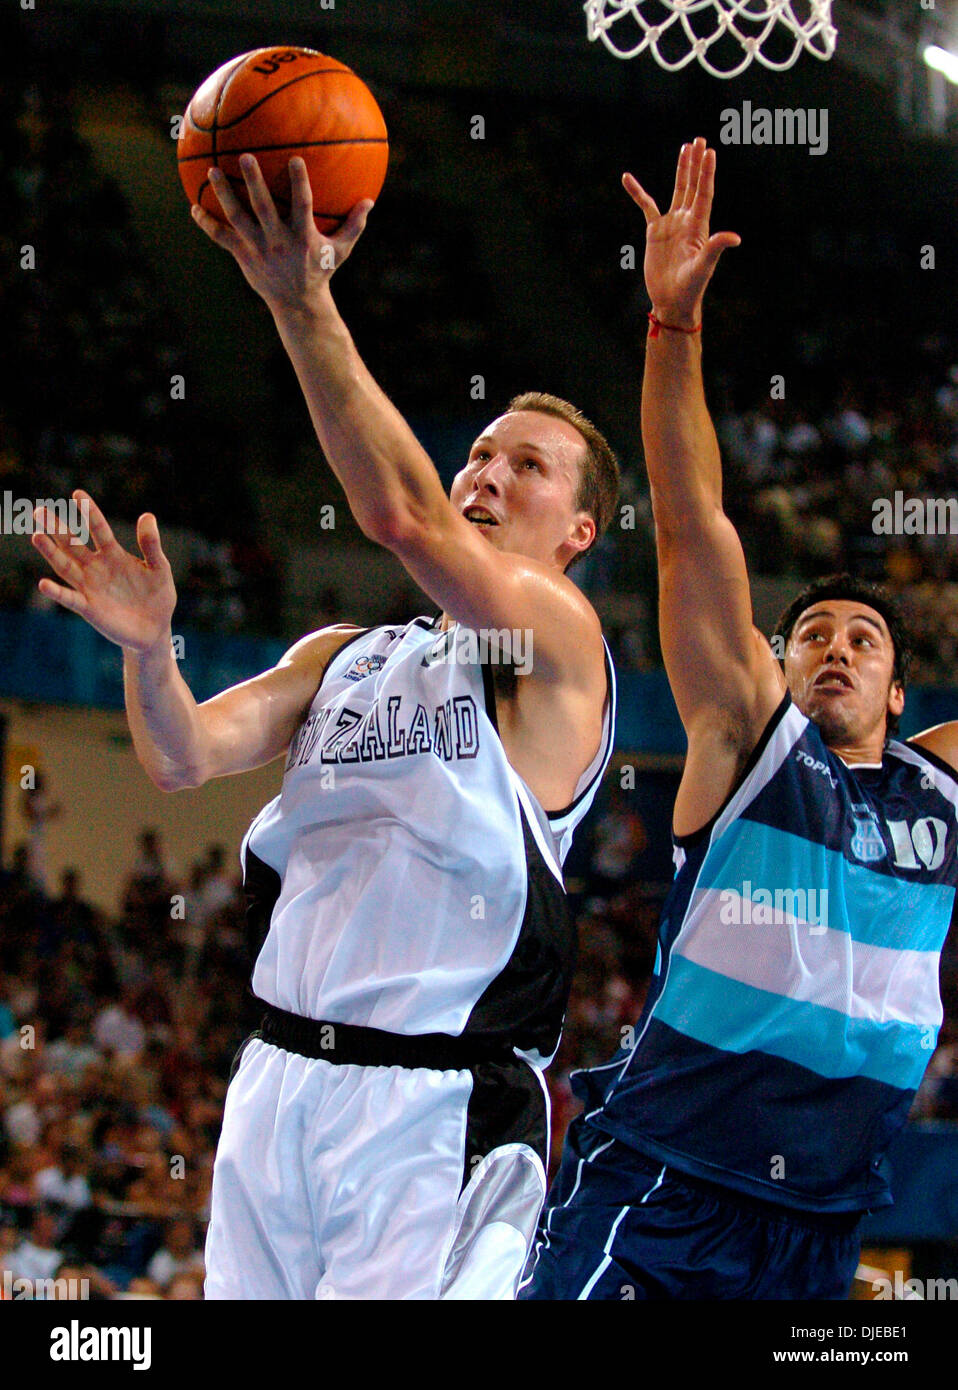 Aug 21, 2004; Athens, Greece; New Zealand Olympic basketball team member Phillip Jones goes past Argentina's Hugo Ariel Sconochini on his way to the hoop during preliminary round basketball play. - Stock Image